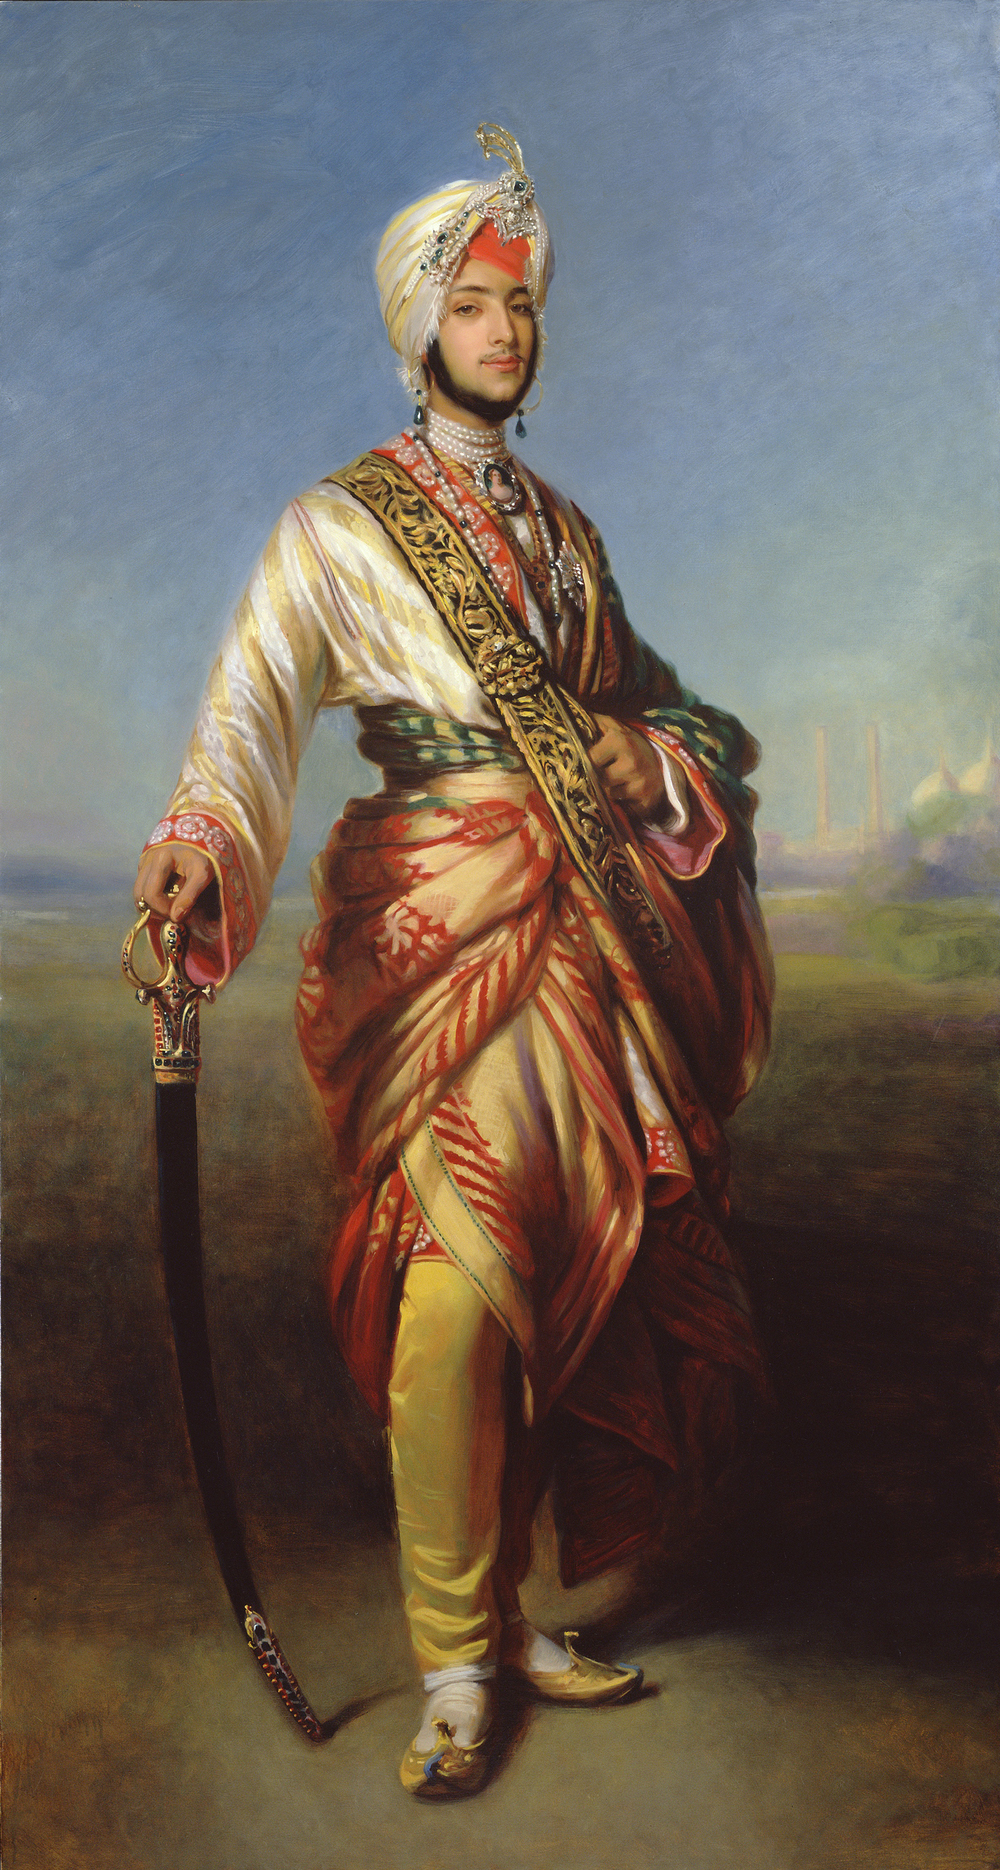 Maharaja Duleep Singh after FX Winterhalter